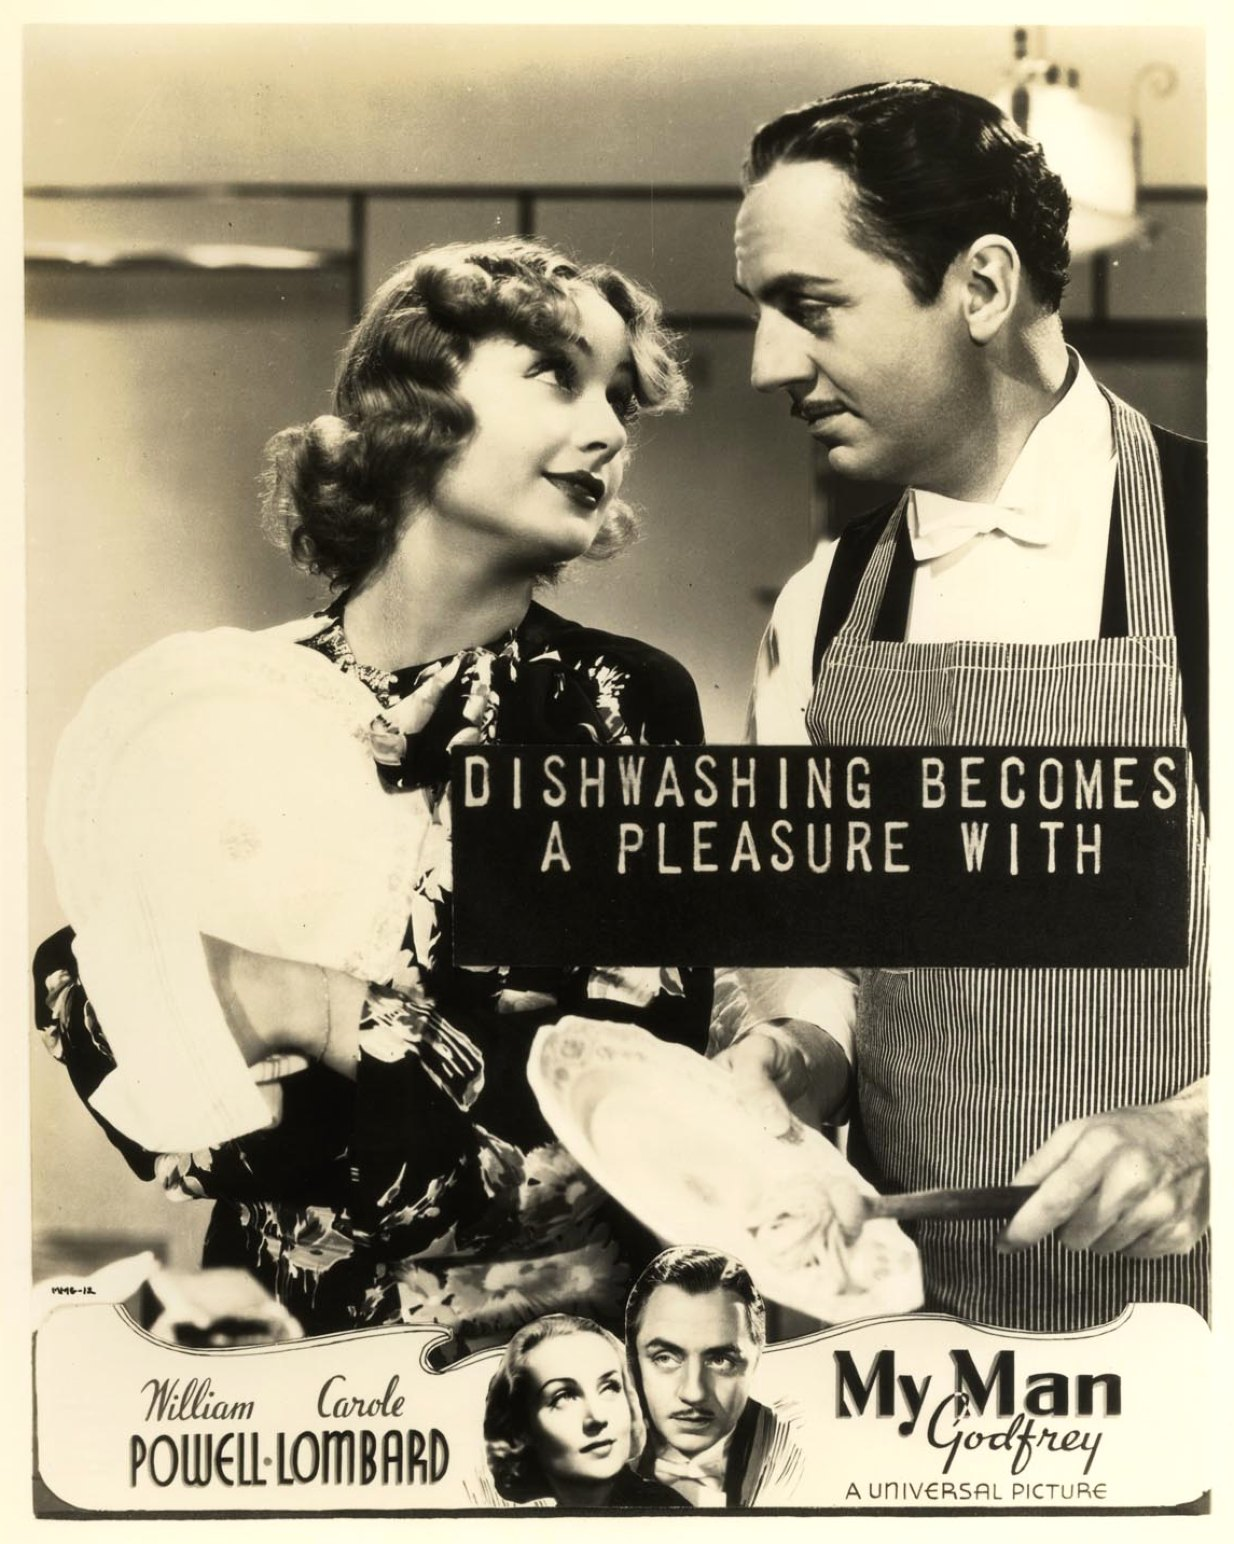 carole lombard my man godfrey advertising 07a